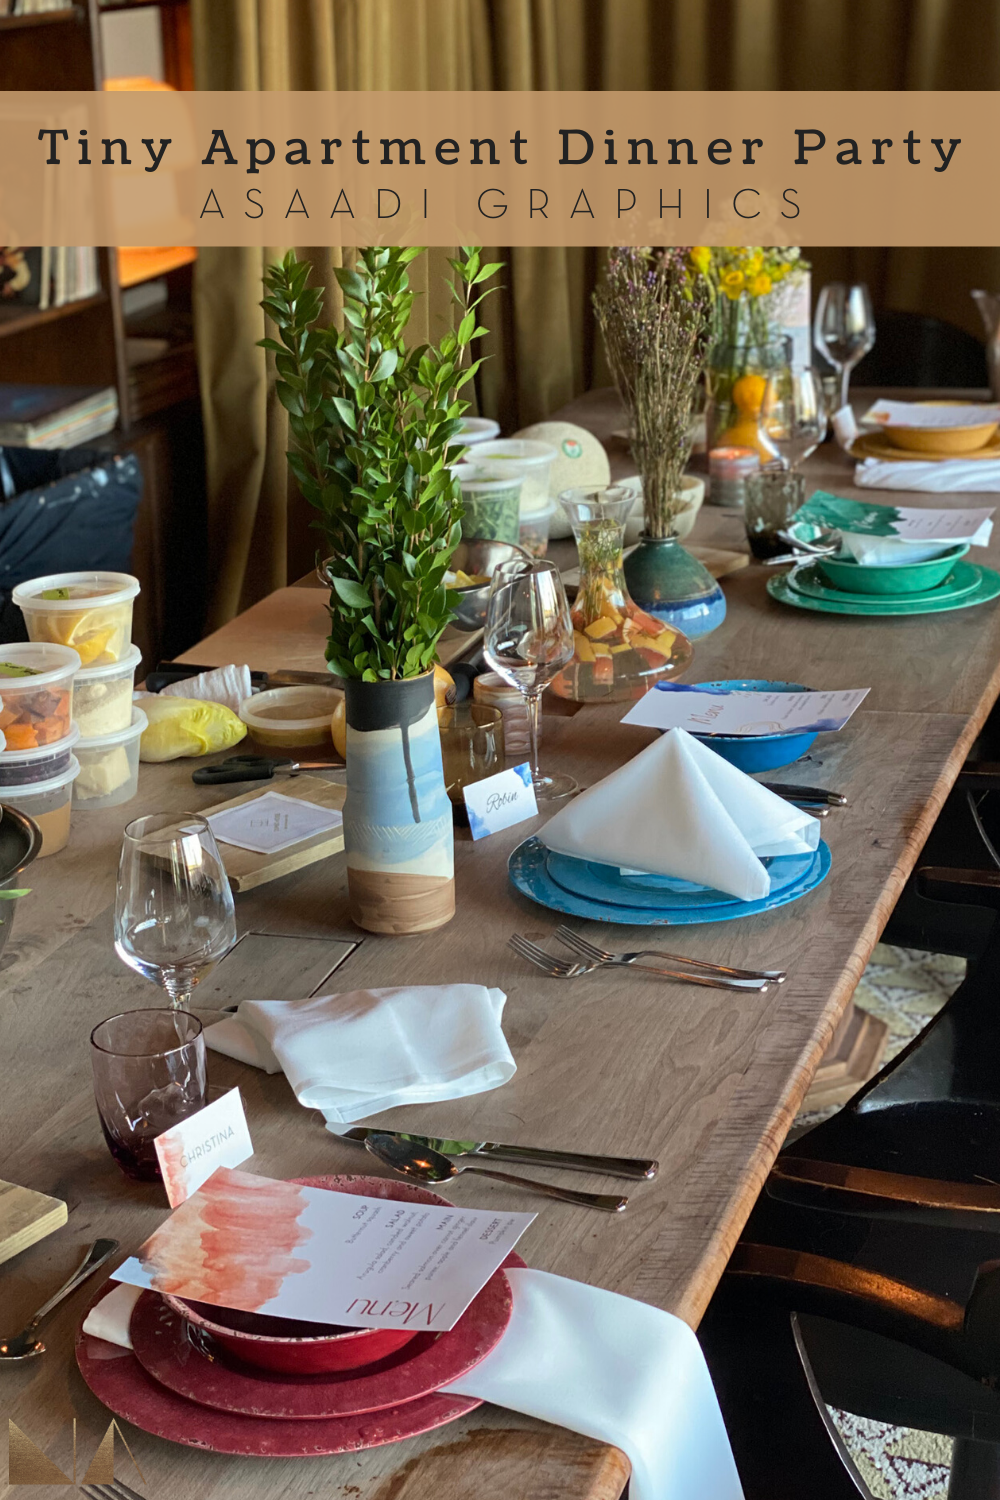 Tiny Apartment Dinner Party | Your GO-TO guide for hosting a classy, intimate dinner party when space is lacking.